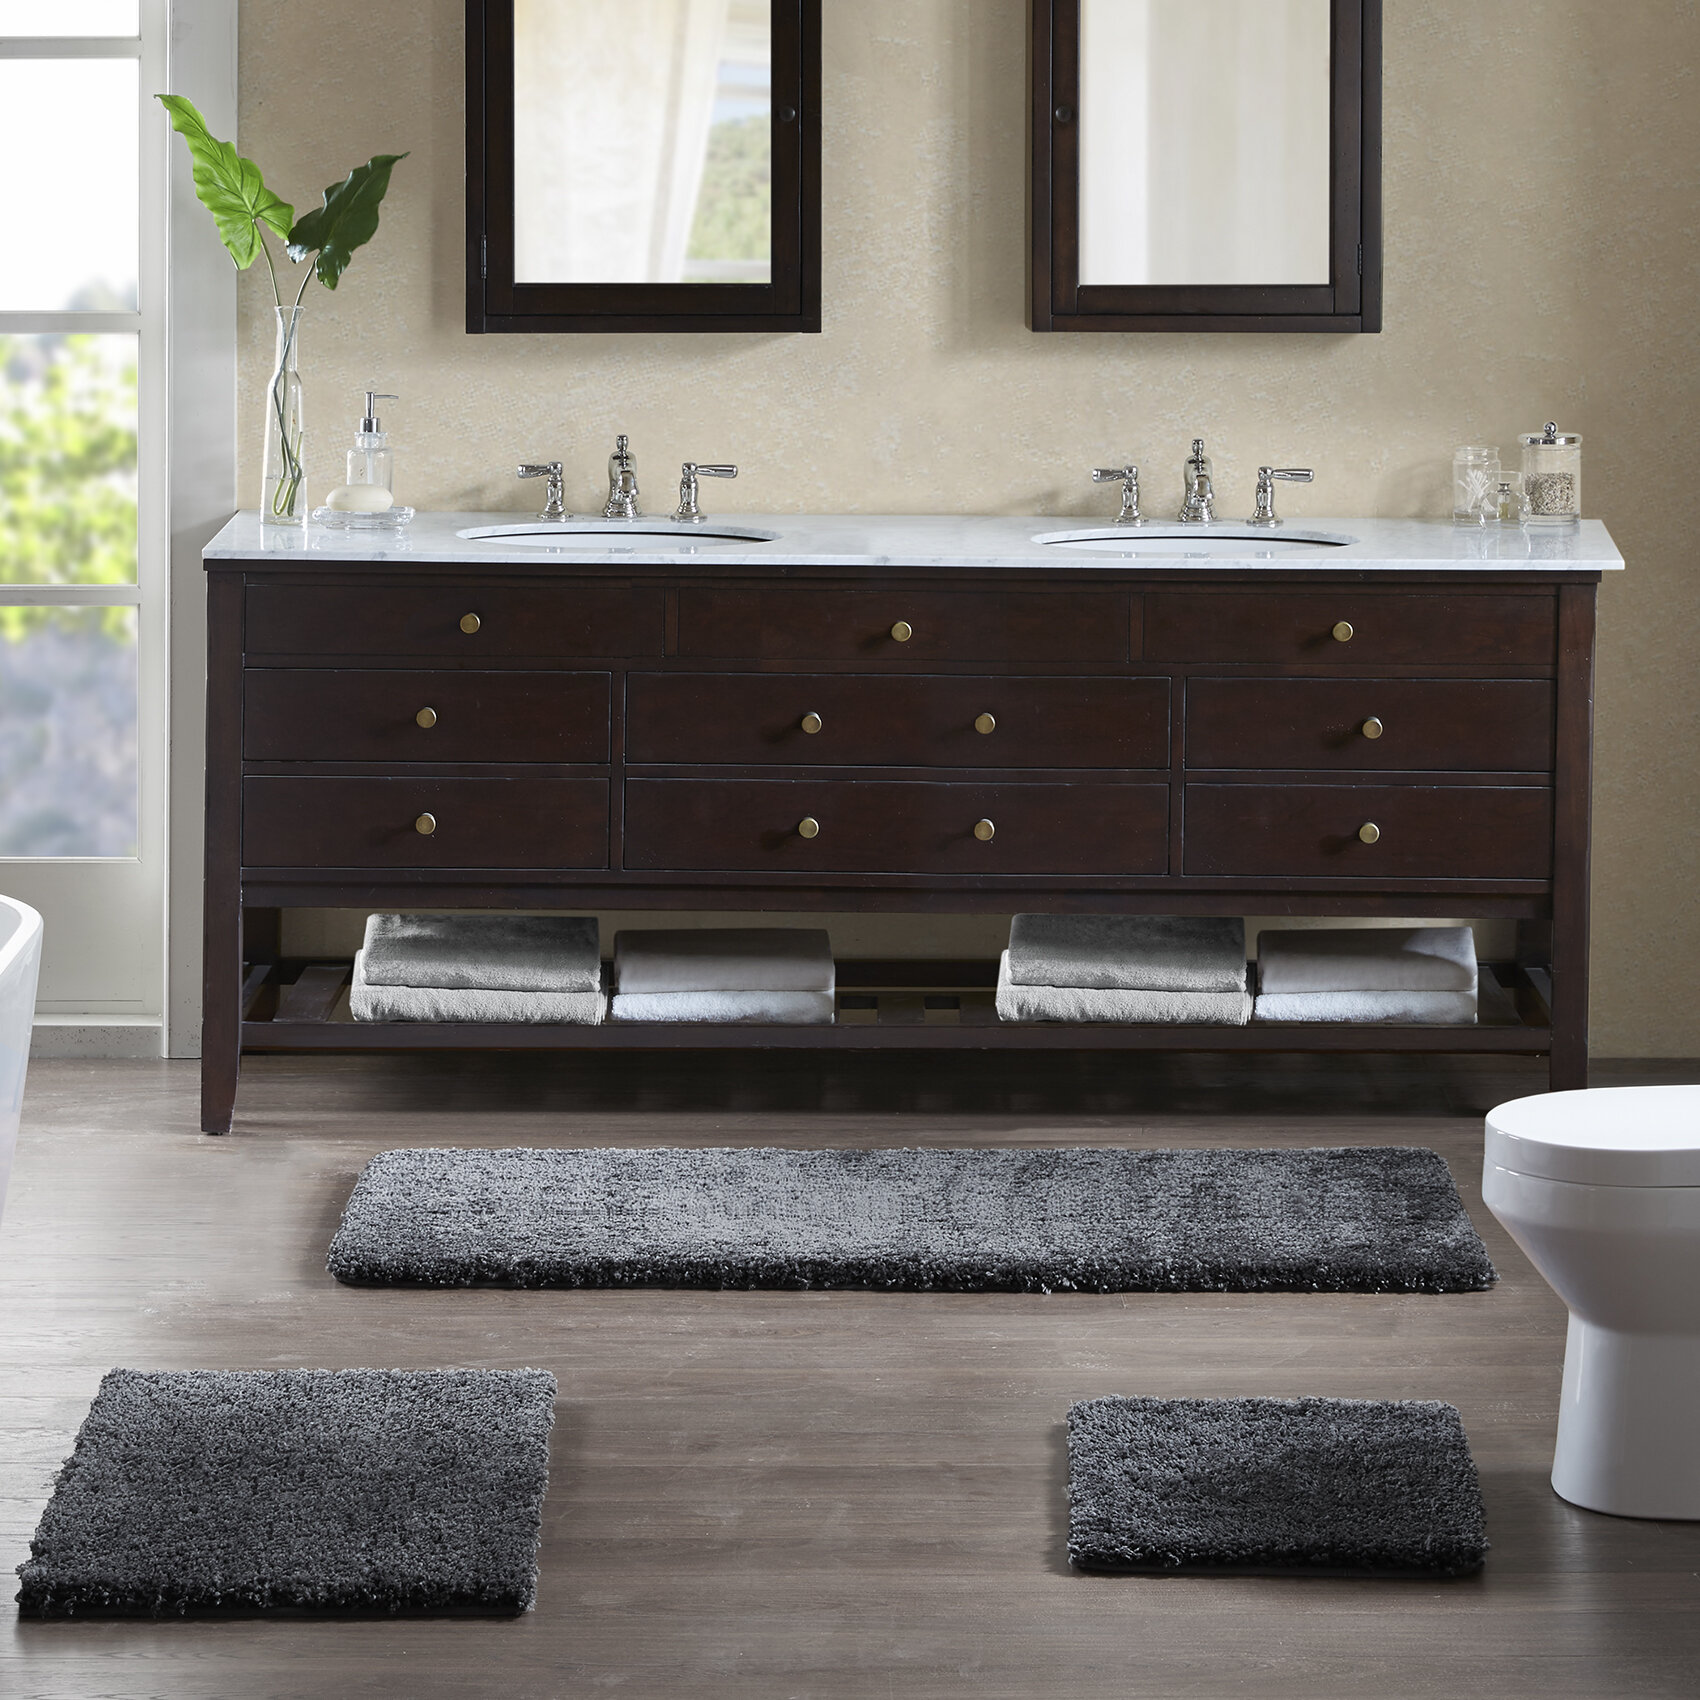 a6c71312d4f8 Madison Park Signature Grande Solid Tufted Bath Rug   Reviews